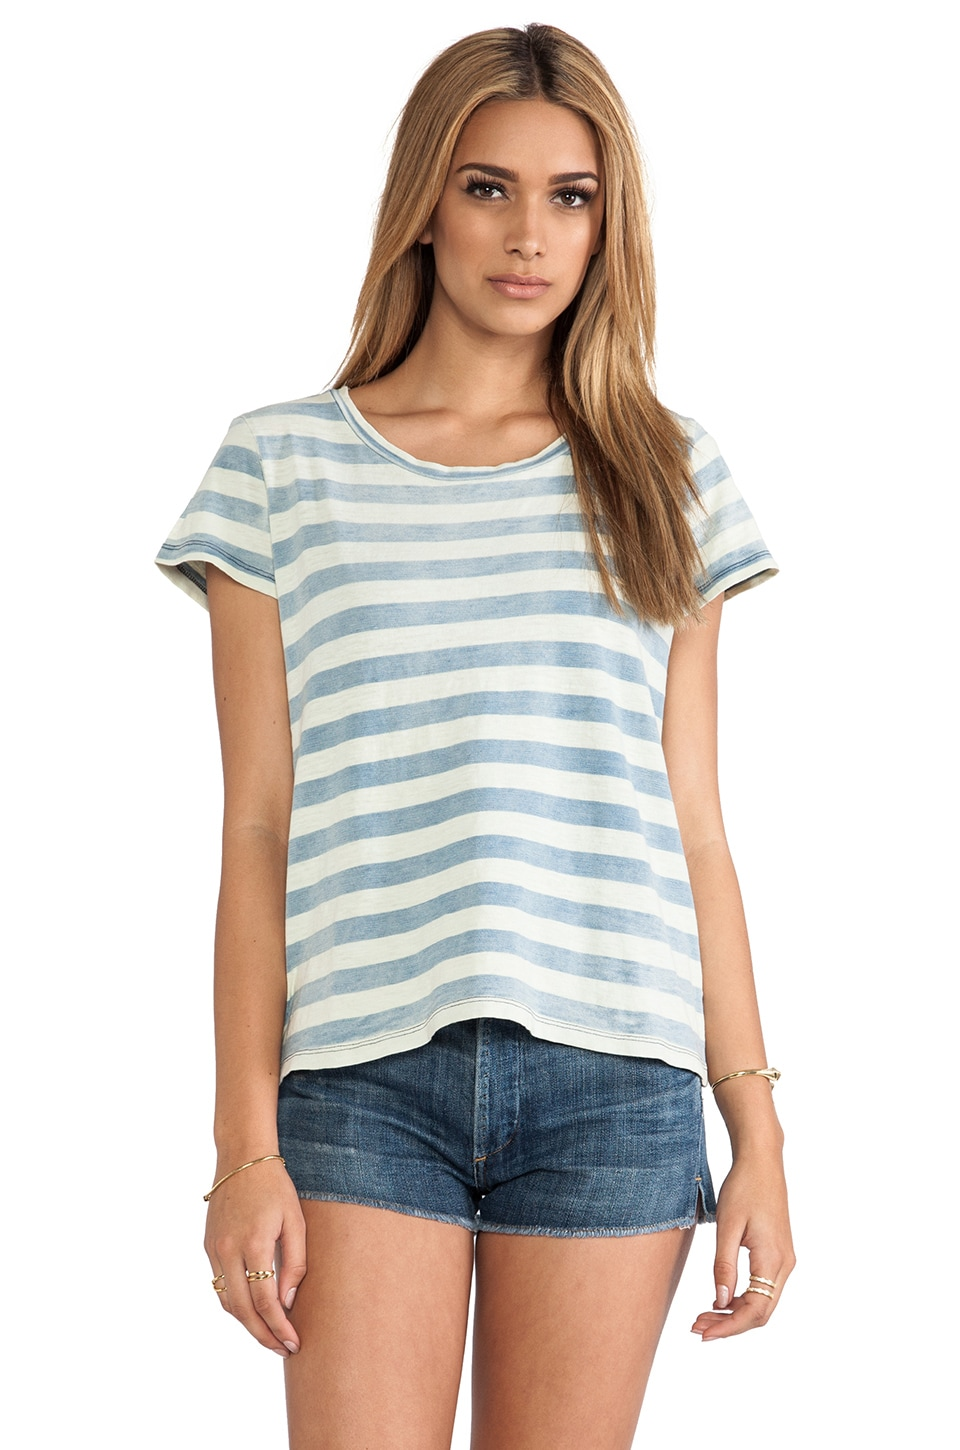 Kain Mila Tee in Thick Stripe